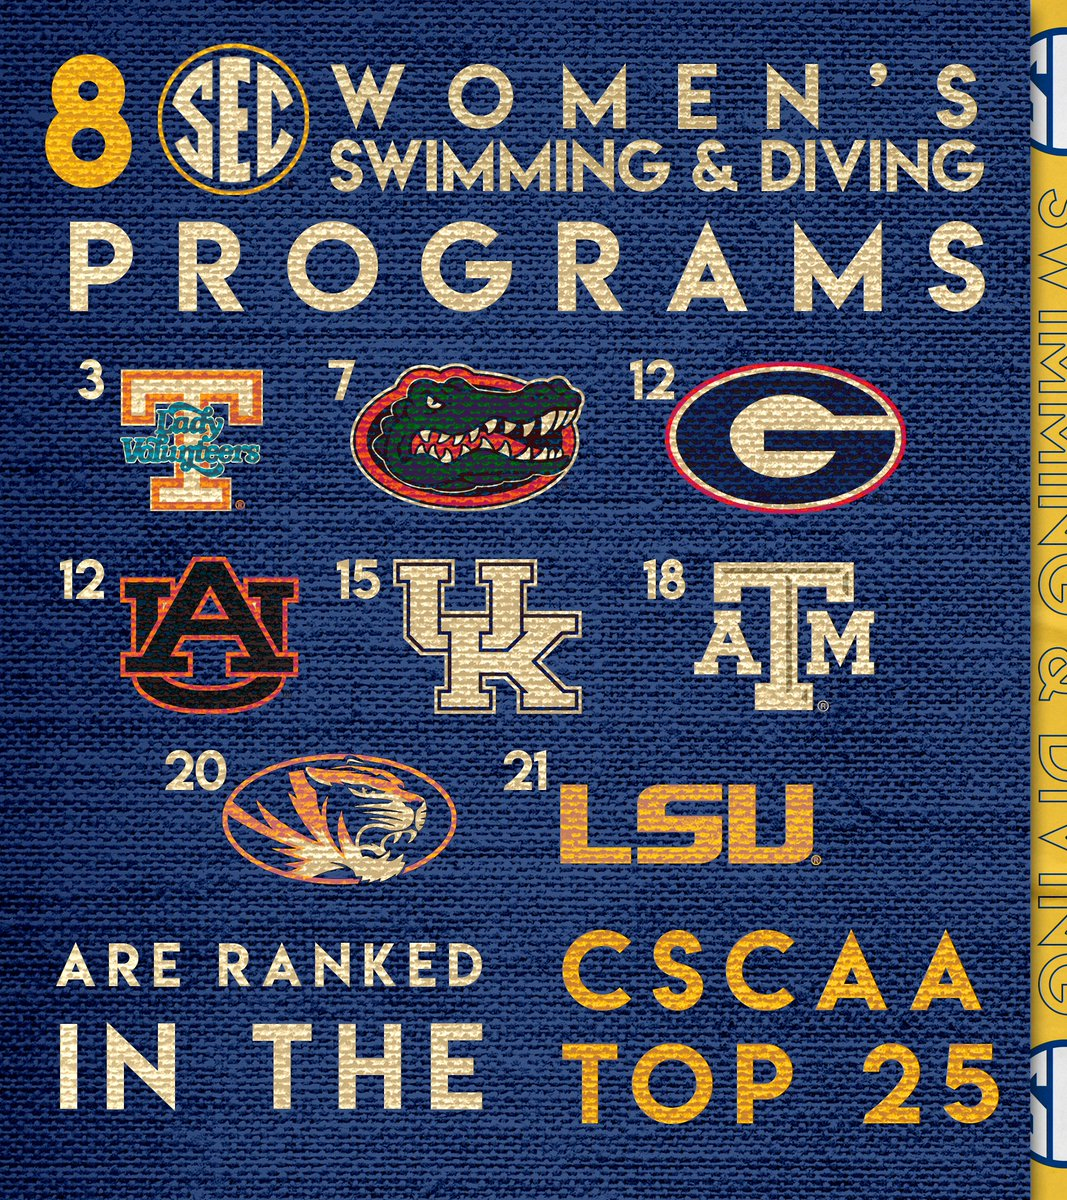 A strong finish for #SECSD in the @CSCAA rankings ⤵️